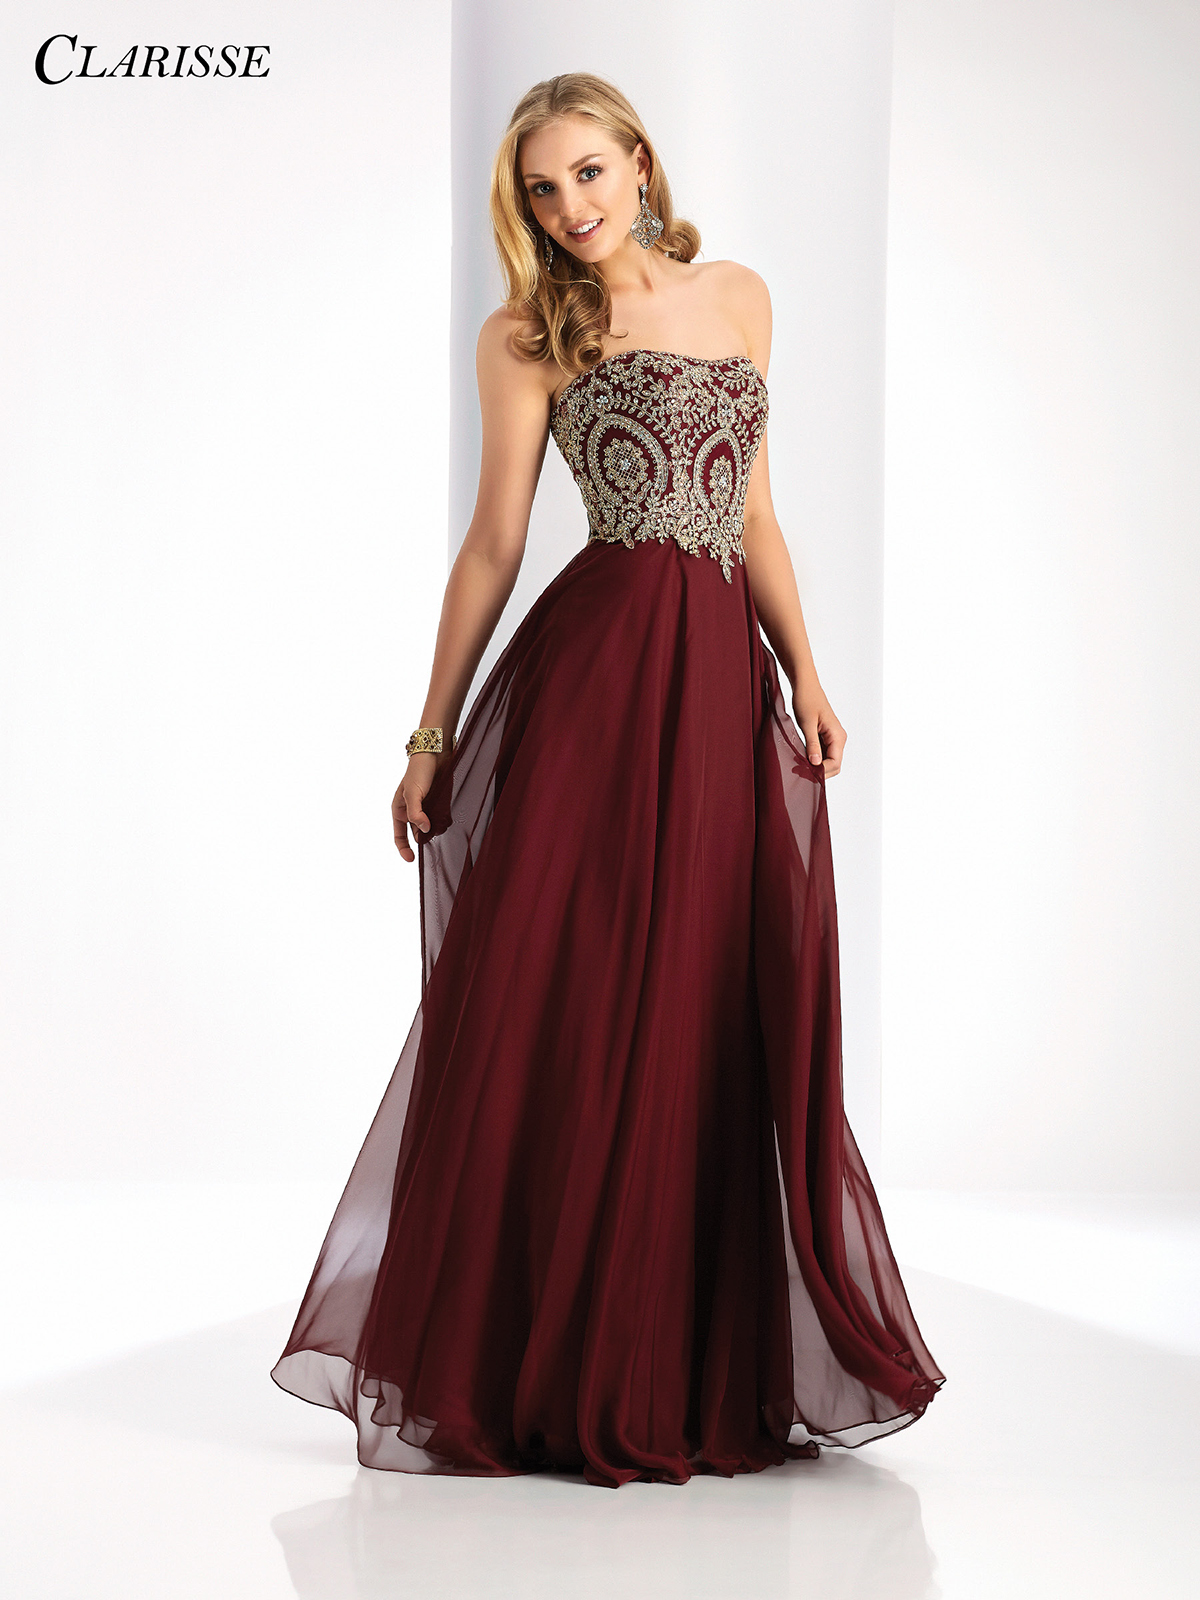 af15cb78abc2c Clarisse Prom Dress 3000 | Promgirl.net